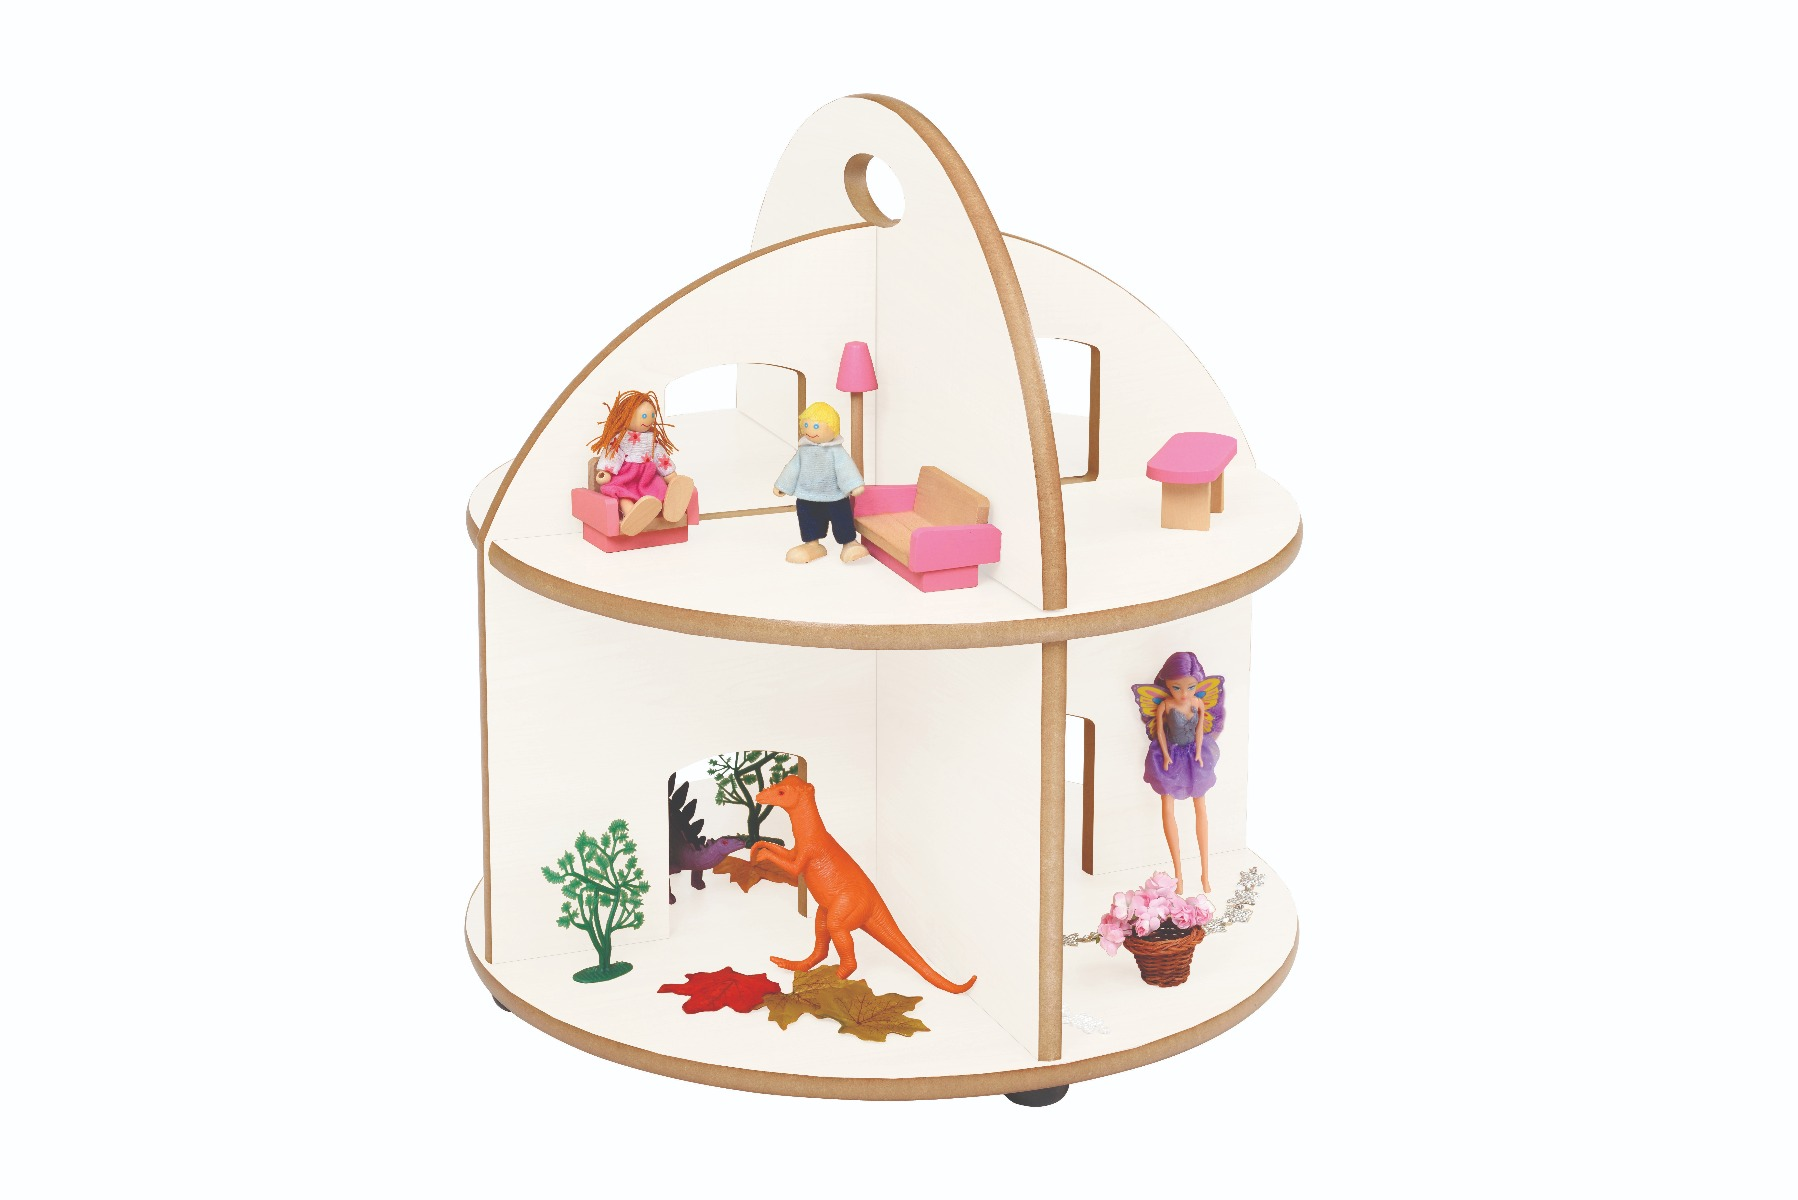 Twoey Toys Small Round World Play and Storage Stand